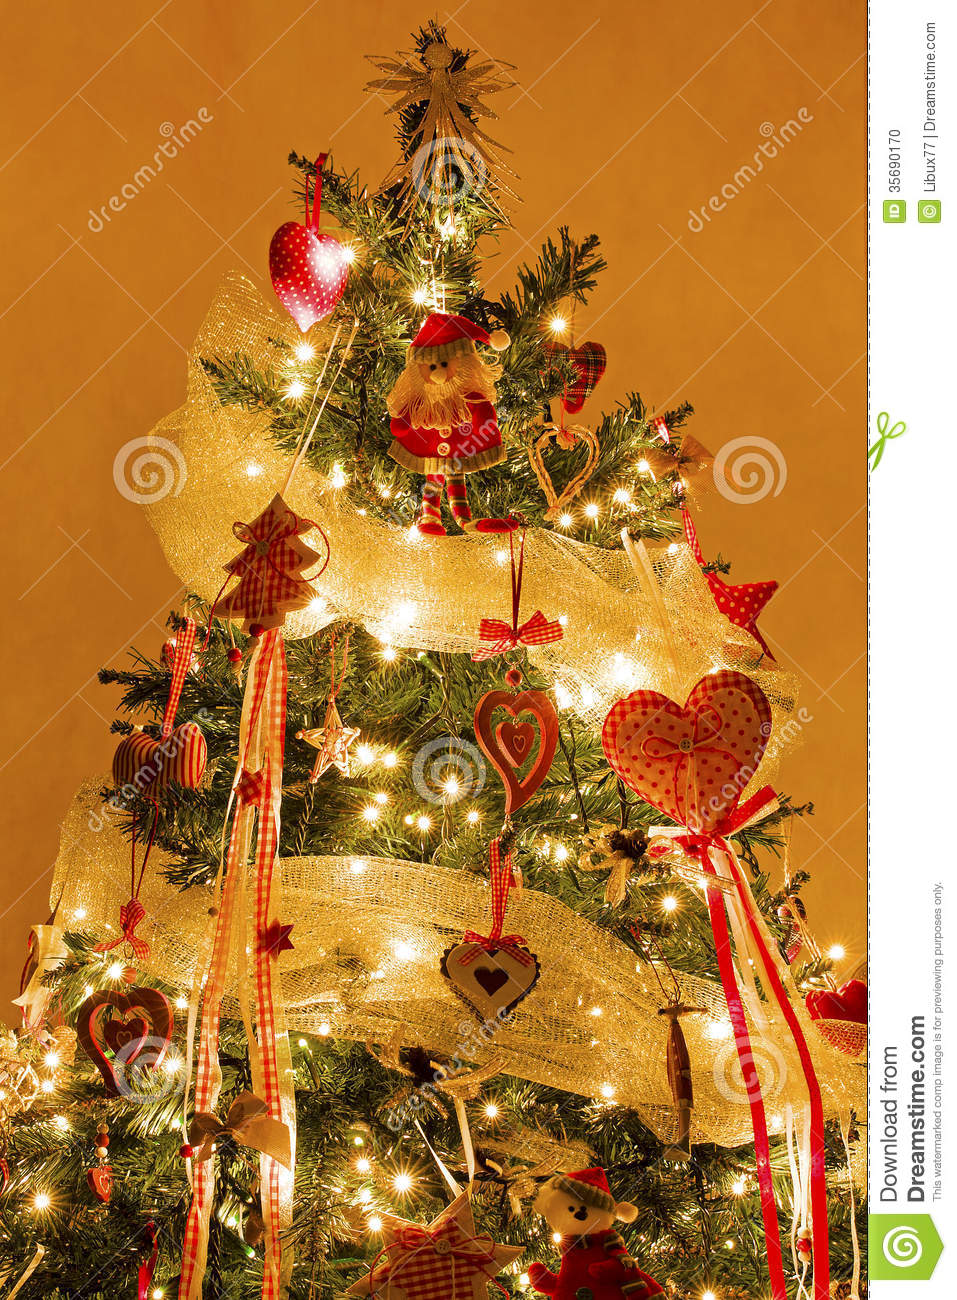 Christmas tree with decorations and lights on stock photo for Christmas tree items list